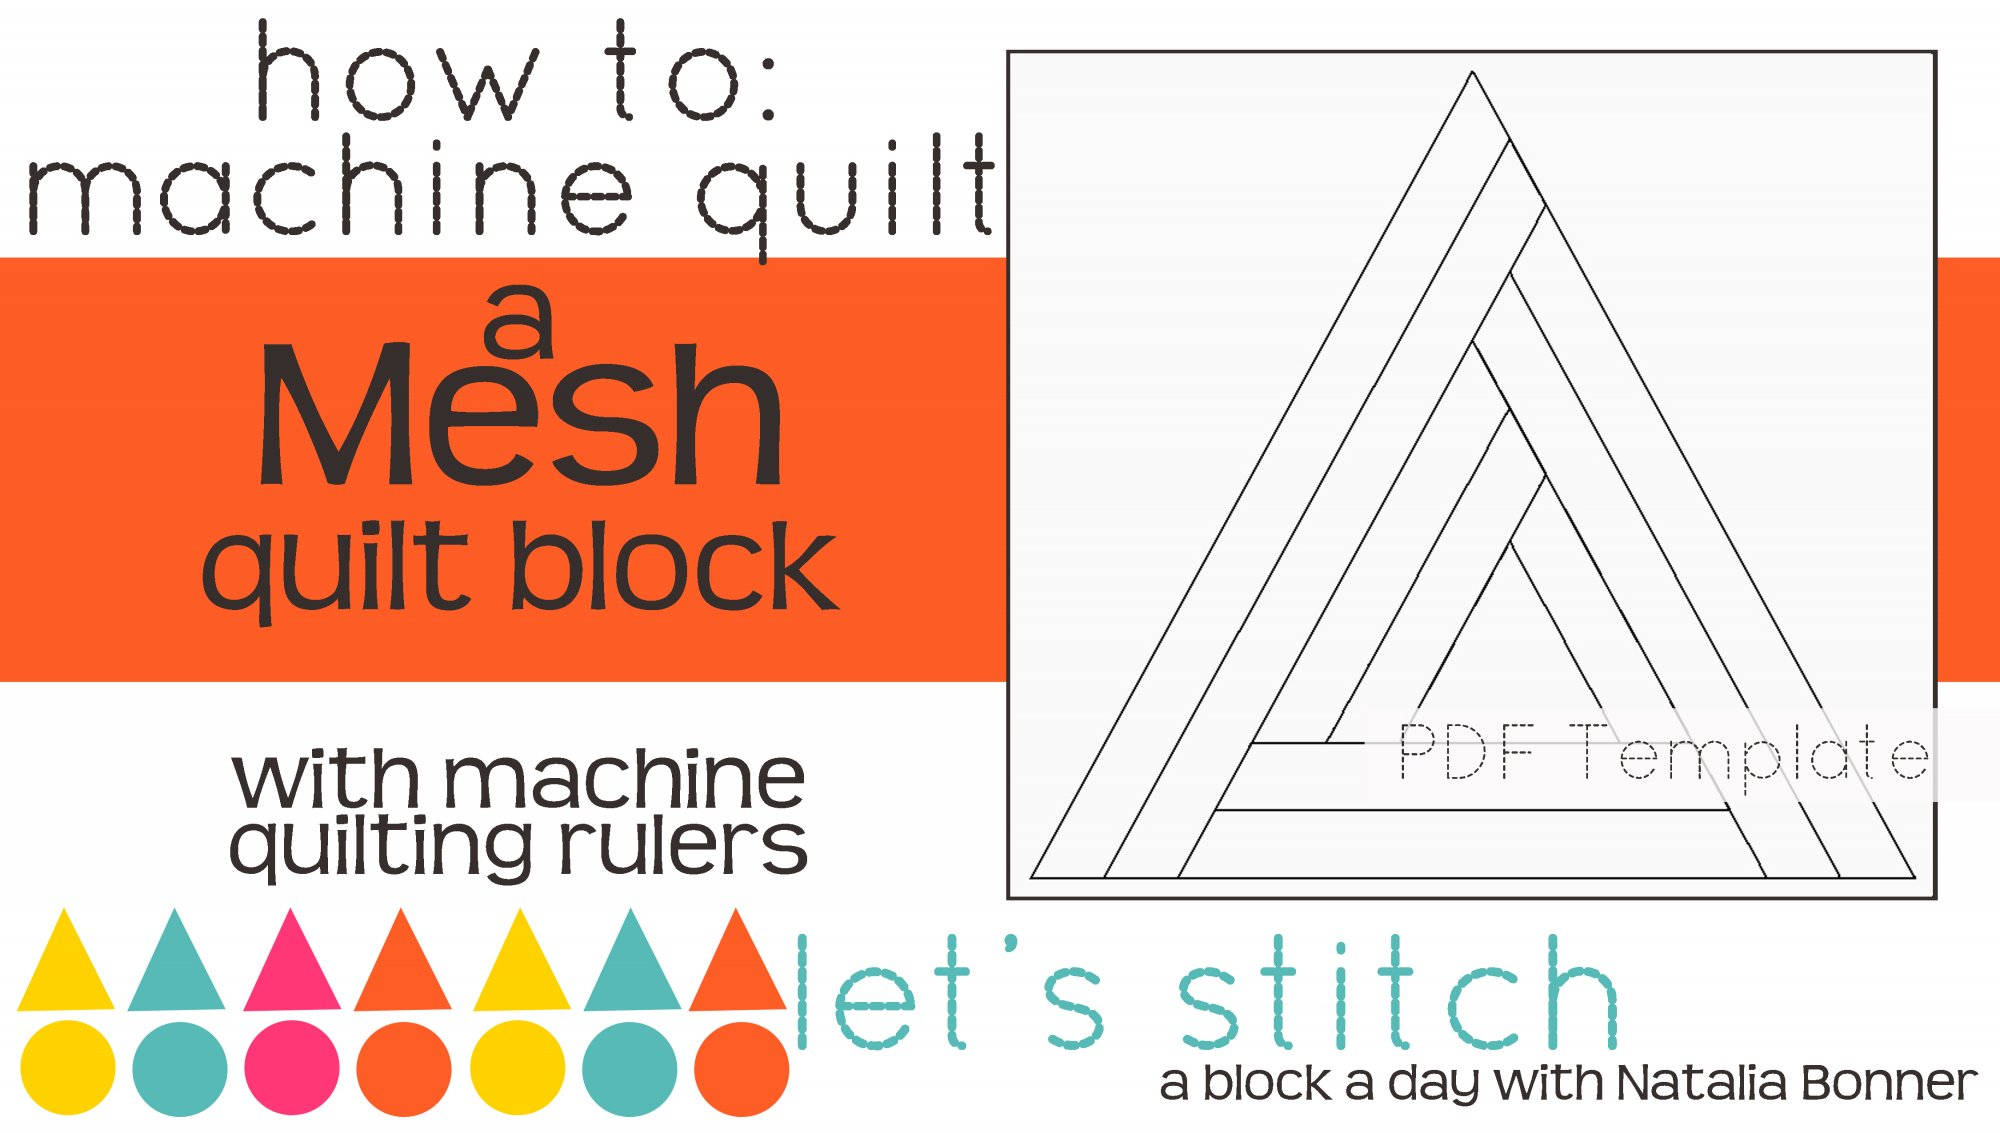 Let's Stitch - A Block a Day With Natalia Bonner - PDF - Mesh